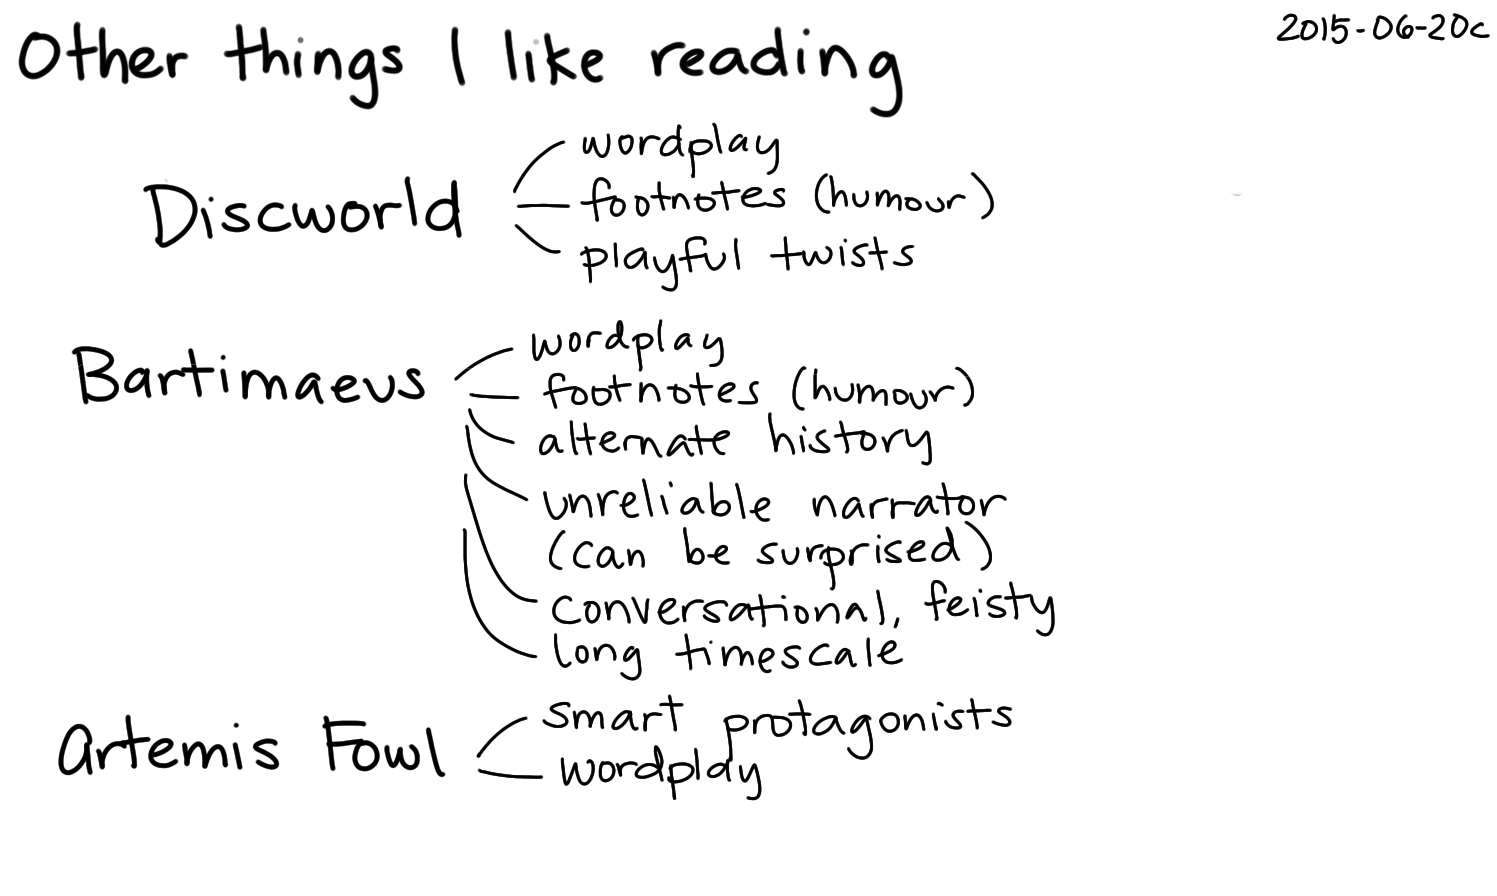 2015-06-20c Other things I like reading -- index card #reading.png